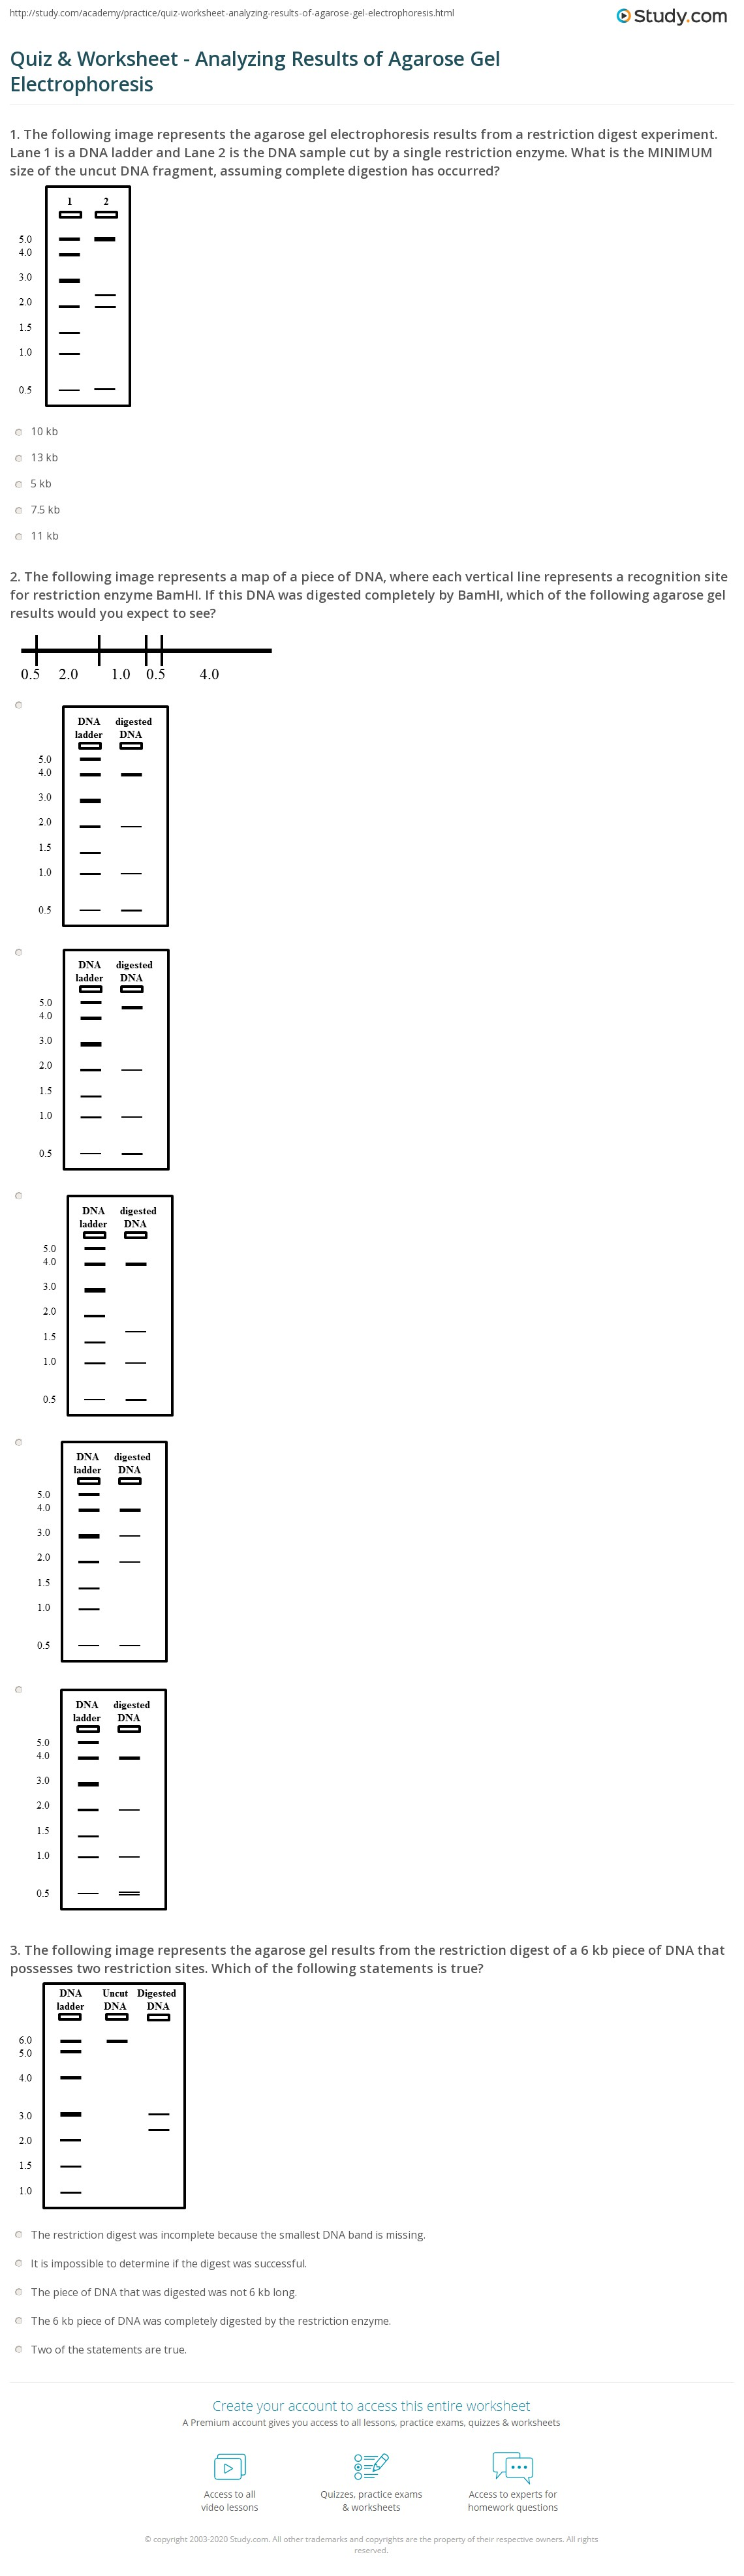 worksheet Restriction Enzyme Worksheet quiz worksheet analyzing results of agarose gel electrophoresis the following image represents a map piece dna where each vertical line recognition site for restriction